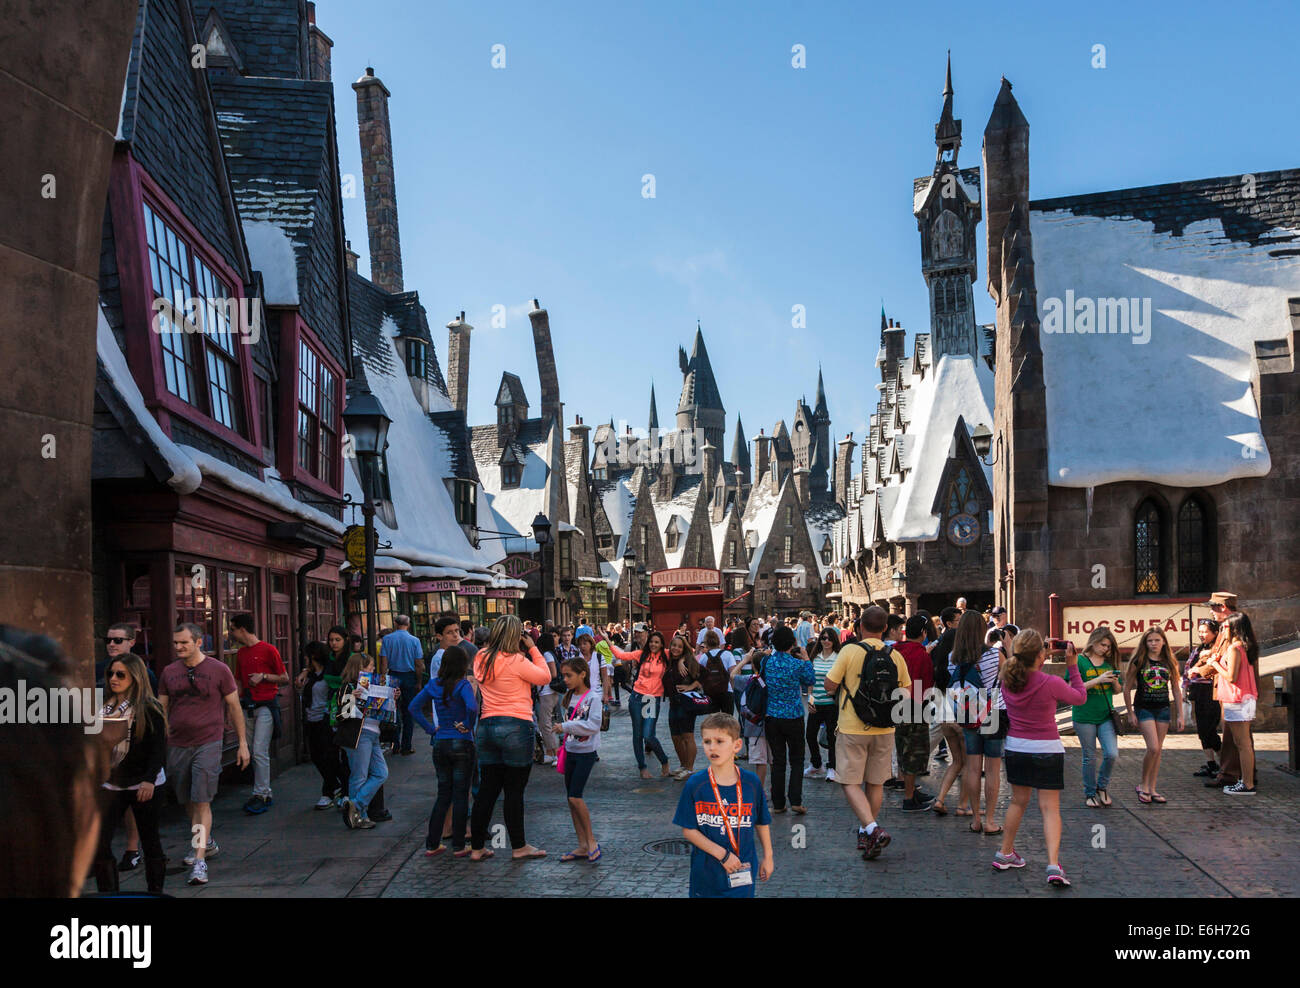 Park guests pose for photographs in The Wizzarding World of Harry Potter at Universal Studios, Orlando, Florida - Stock Image